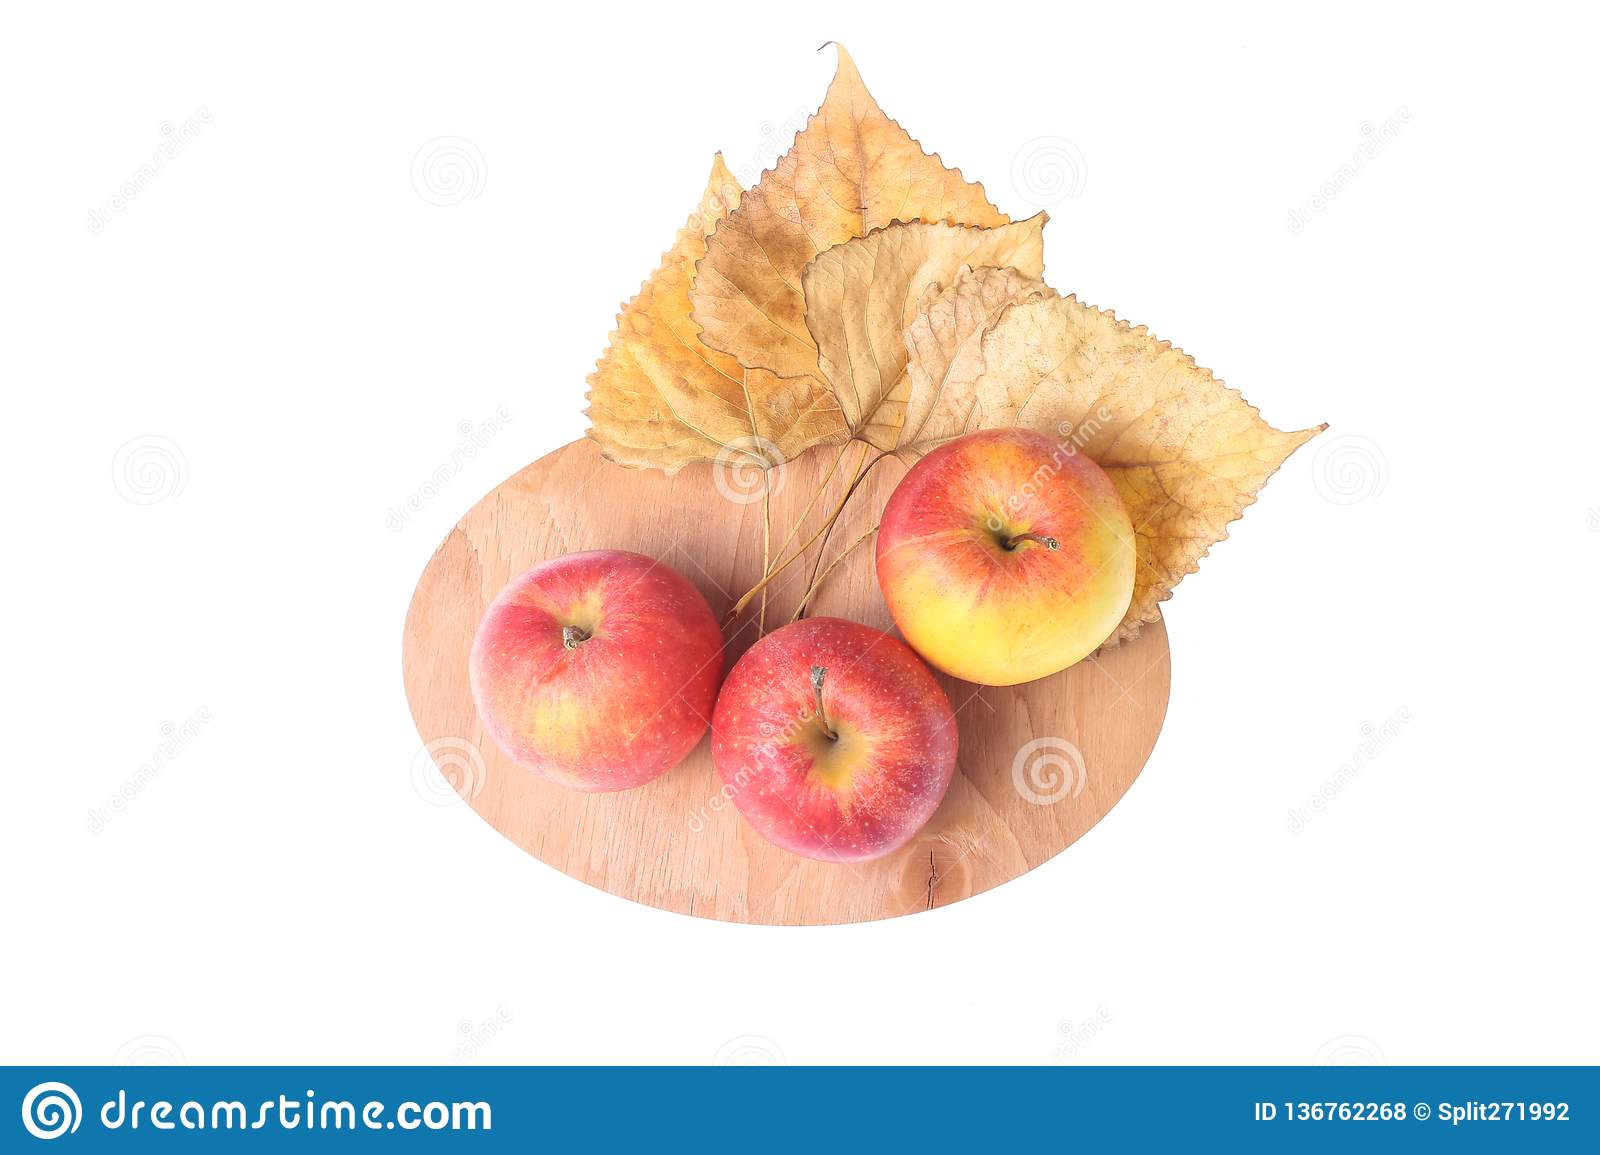 Three ripe apples, fallen leaves